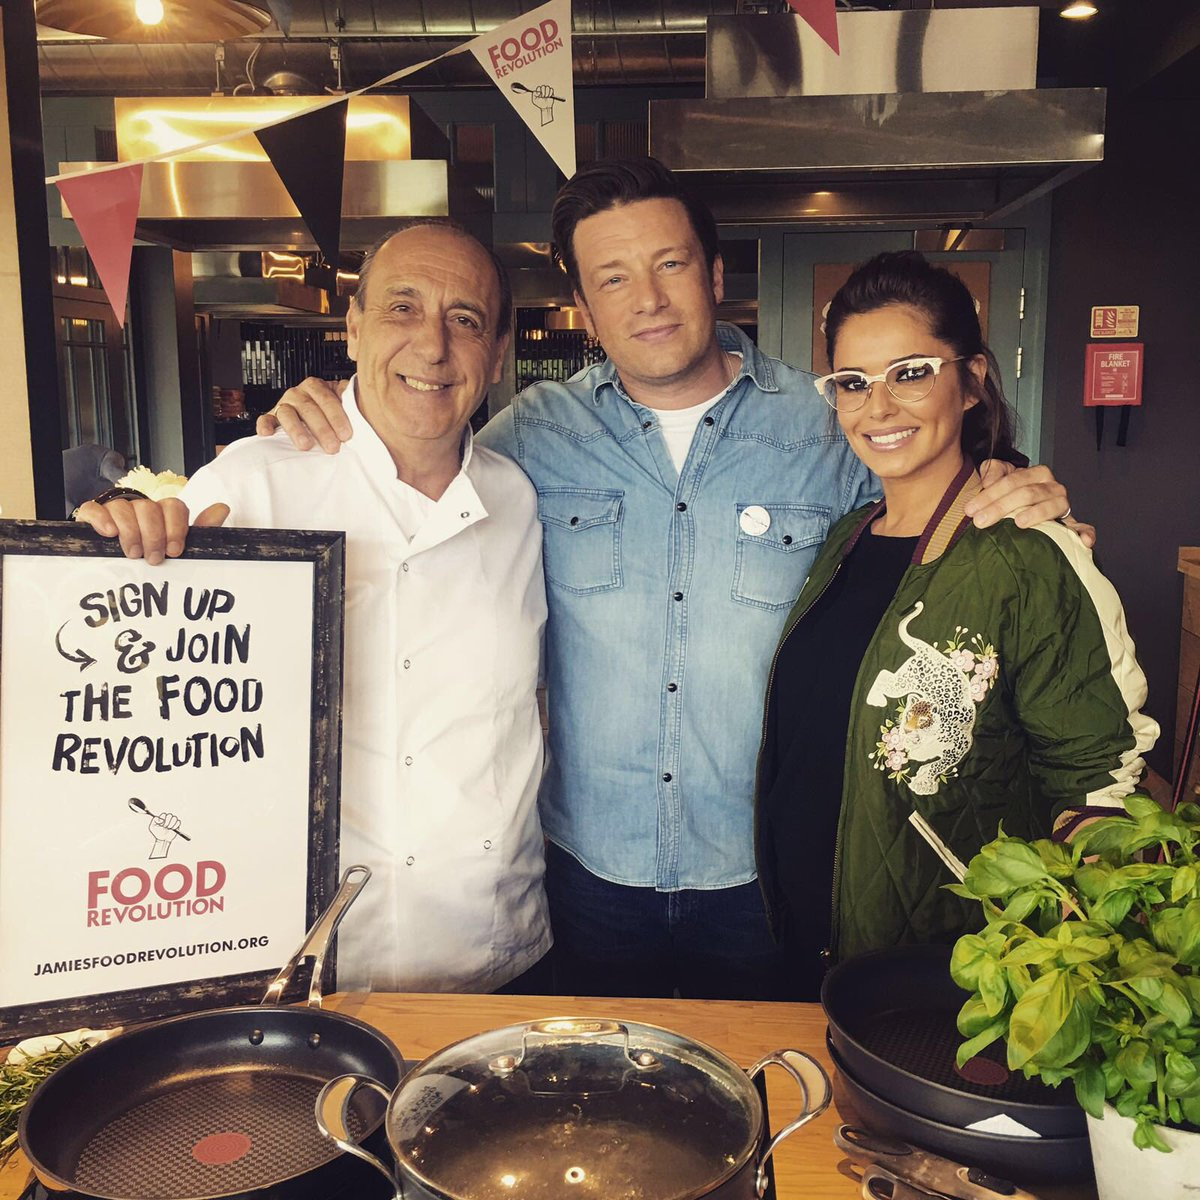 .@CherylOfficial is cooking live with me for #FoodRevolution get watching https://t.co/Ulbql4rNnr https://t.co/cd93XcR1hO